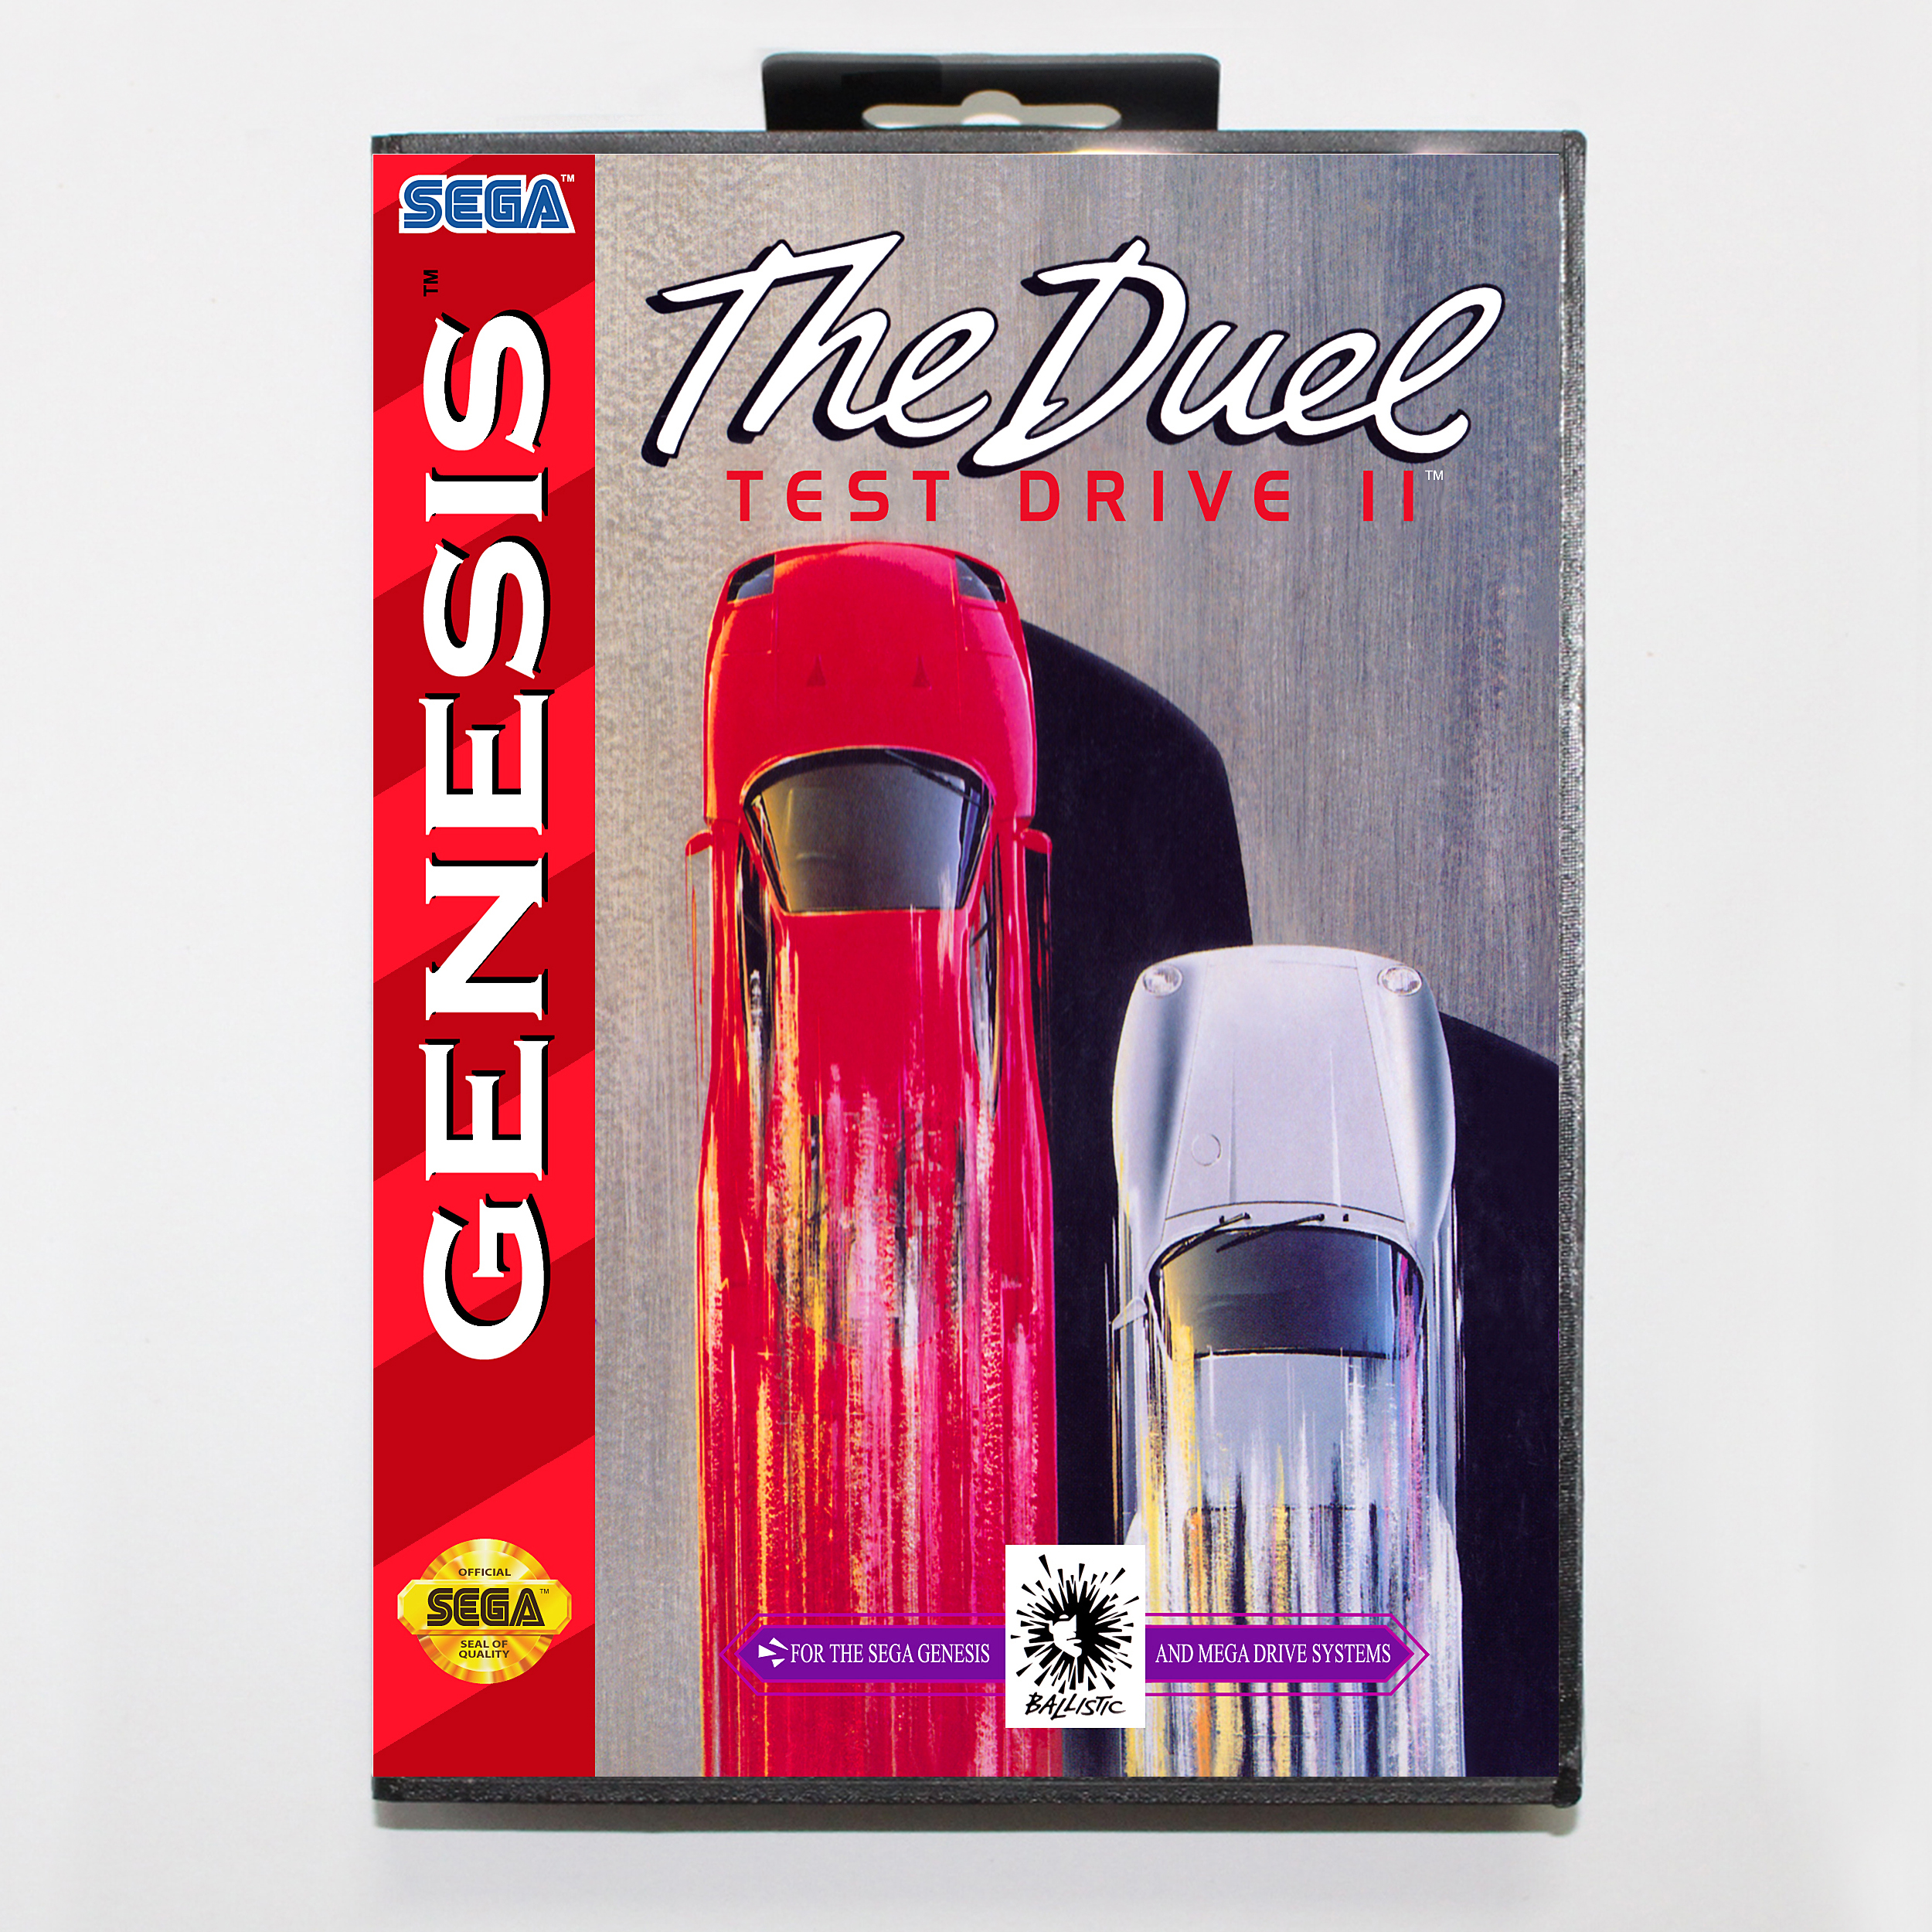 Test Drive II The Duel with Retail Box 16bit MD Game Card For Sega Mega Drive/ Genesis image